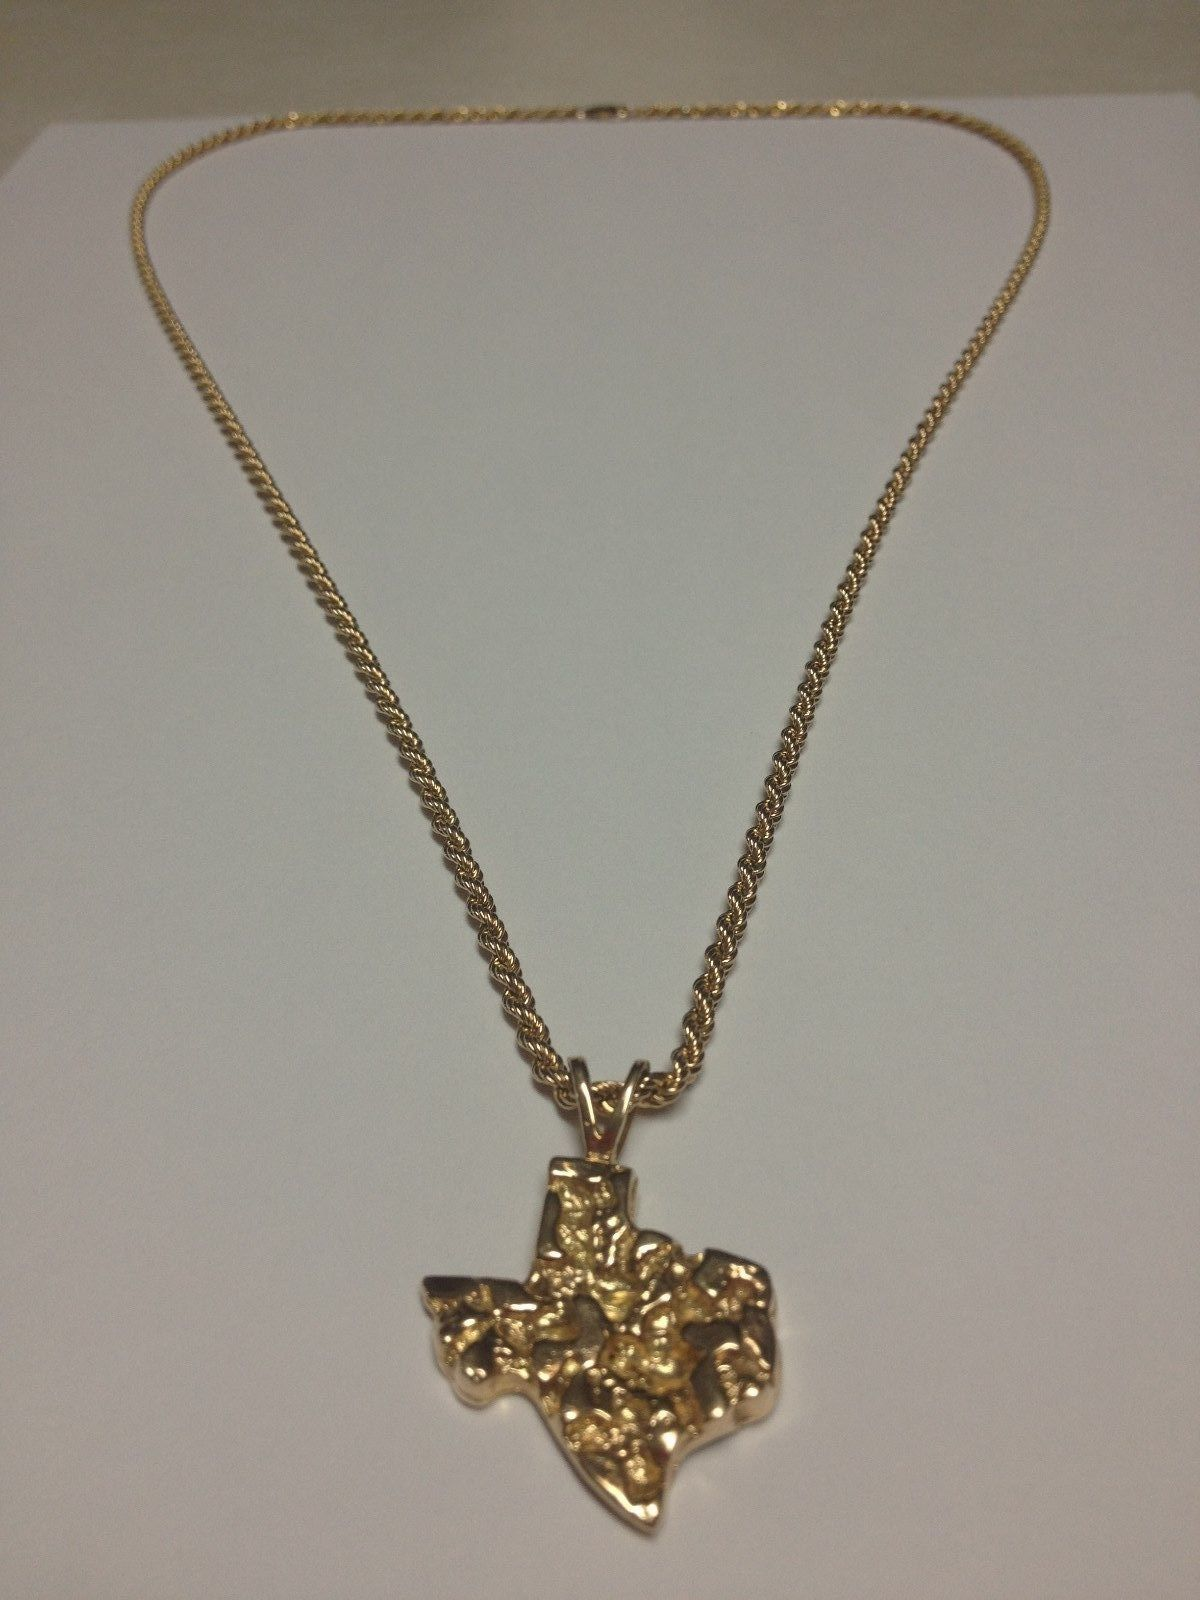 218c924377738 MEN'S TEXAS STATE 10K GOLD NUGGET PENDANT, 14K GOLD ROPE CHAIN 24.5 ...